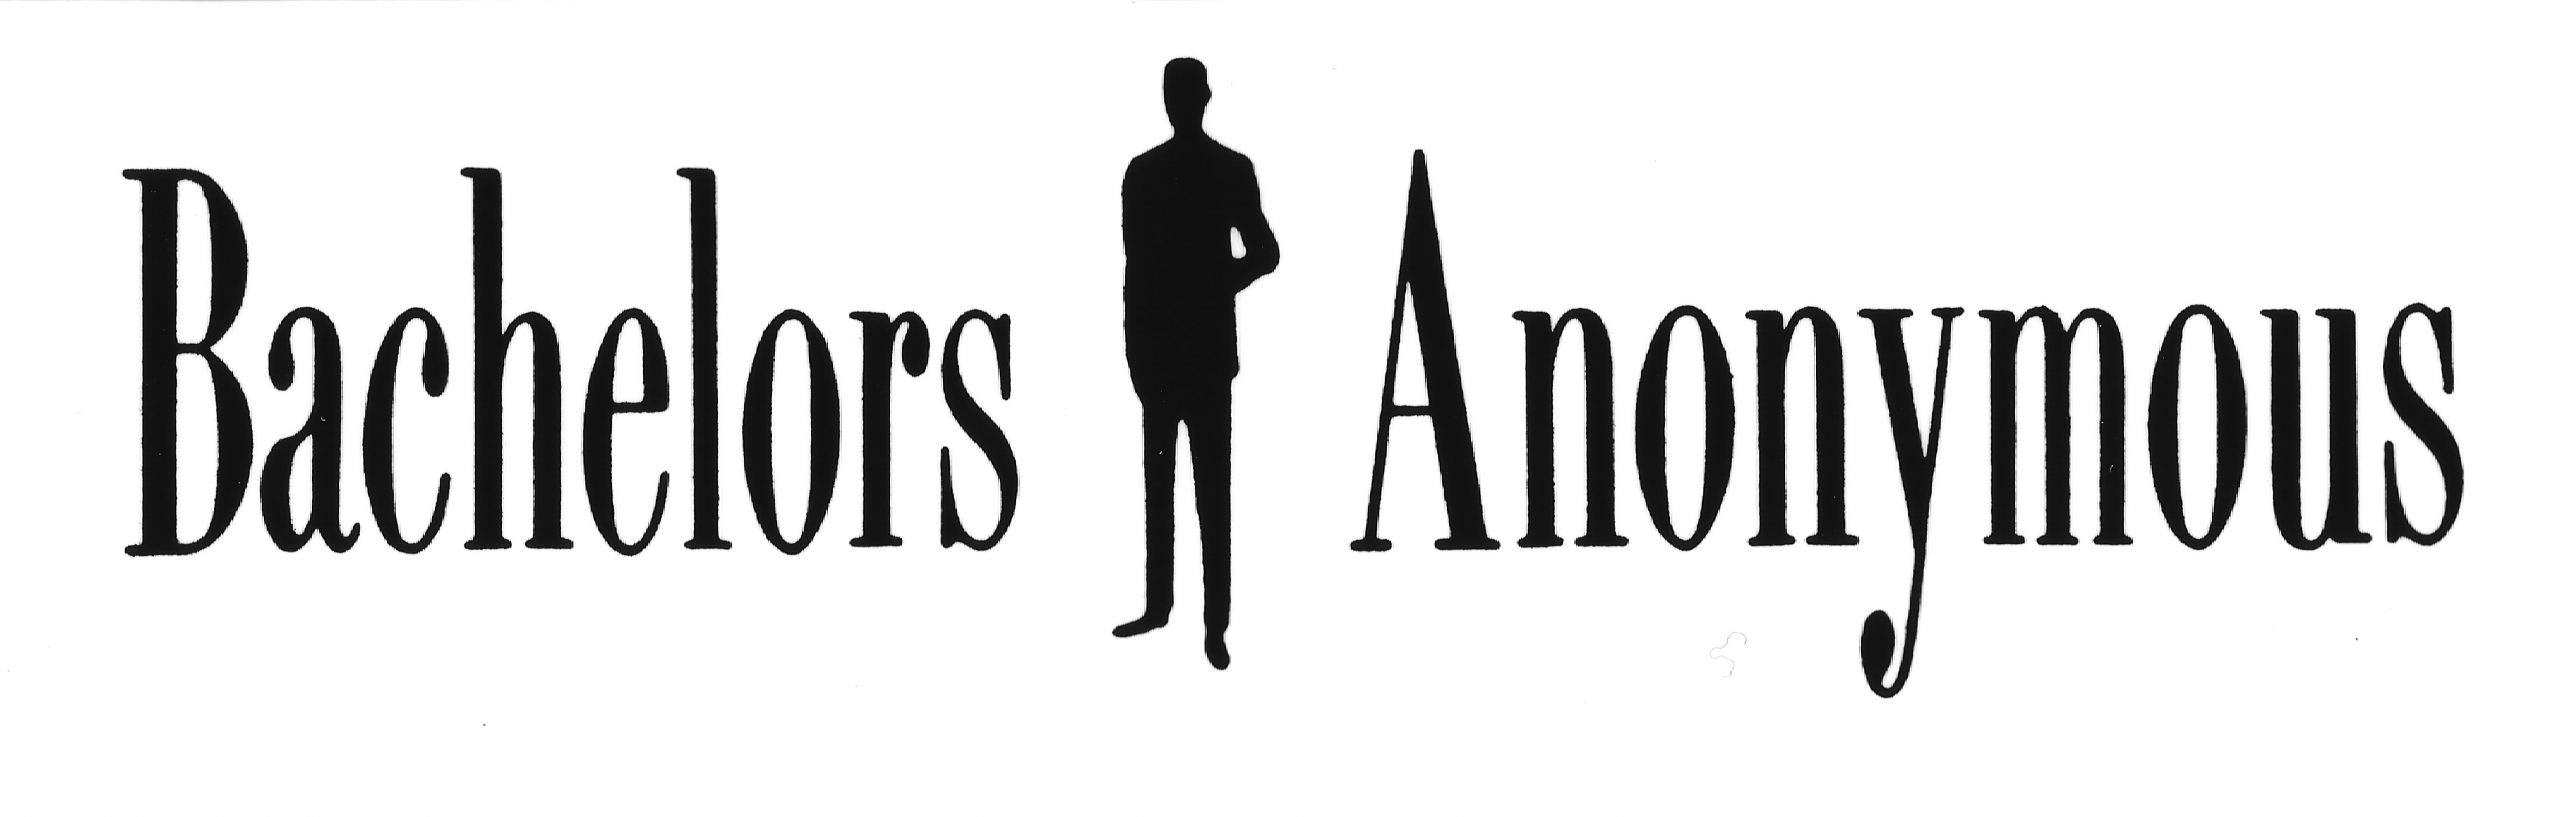 Bachelors Anonymous logo